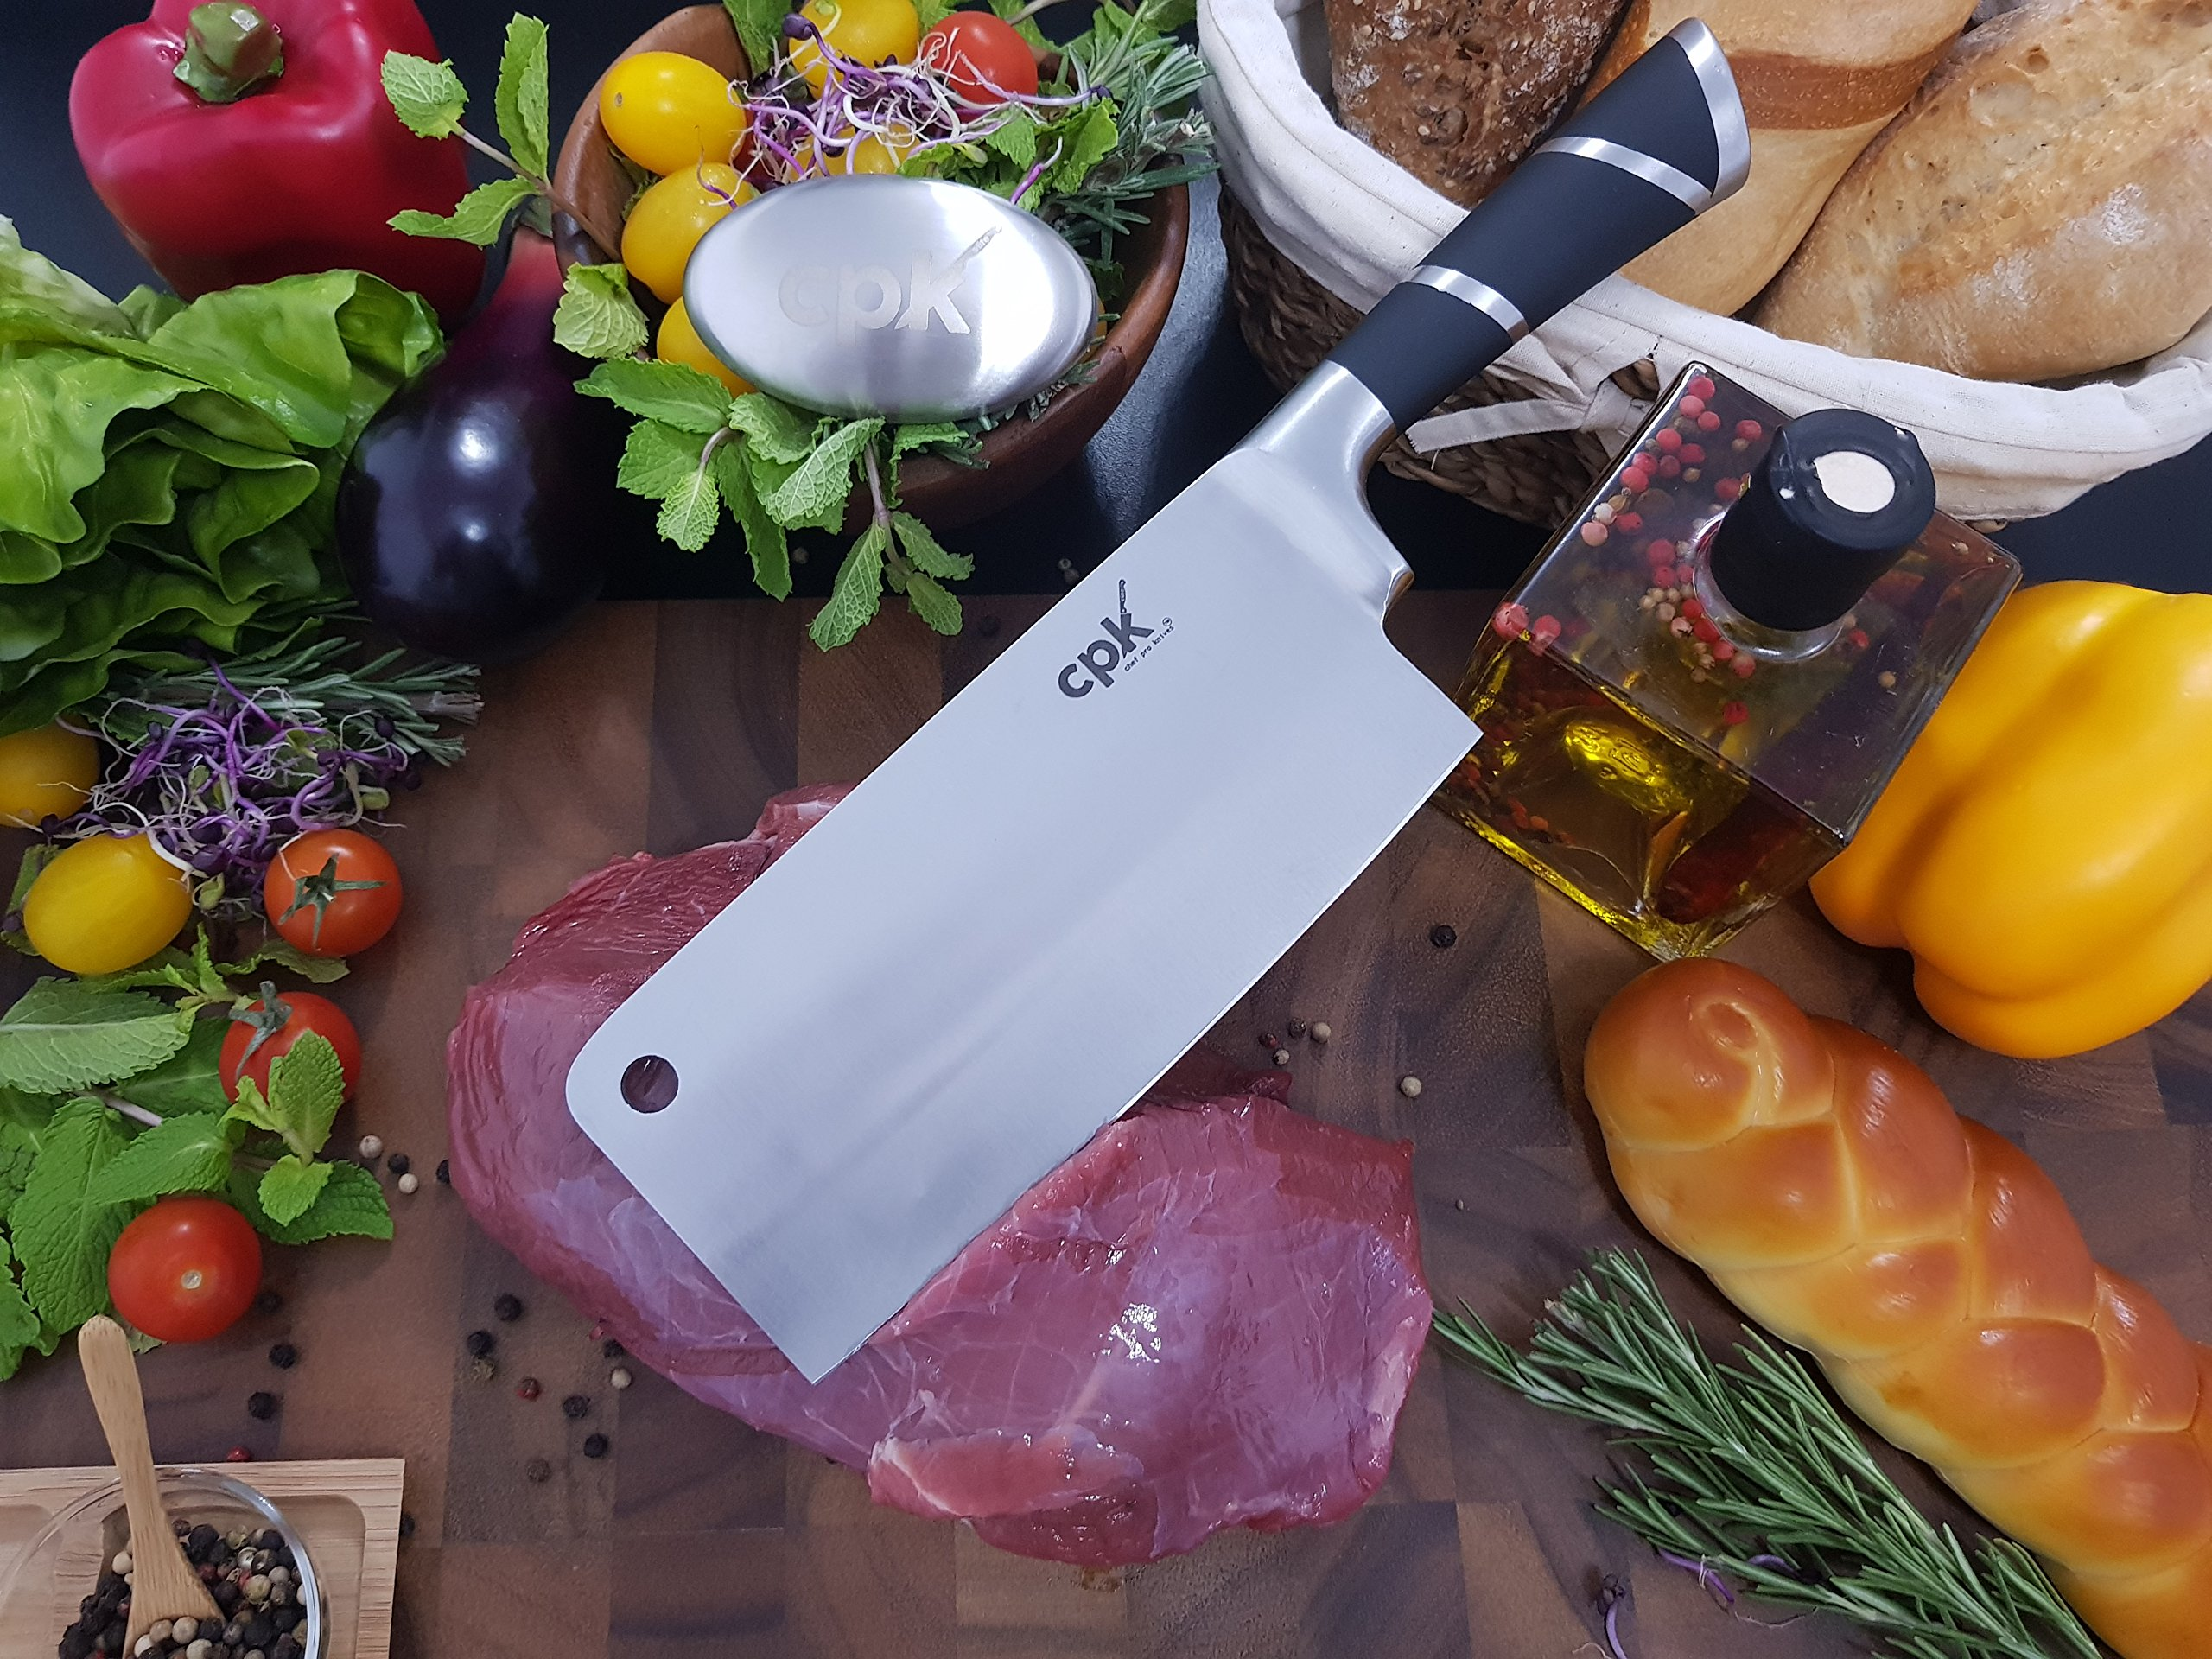 7'' Professional Cleaver Knife Stainless Steel with Ergonomic Handle/Chinese Meat Cleaver/Butcher knife/Chopper Vegetable Cutter BONUS-Metal Soap for Odor Removing all in a Gift Box for Home Kitchen by CPK Elite (Image #2)